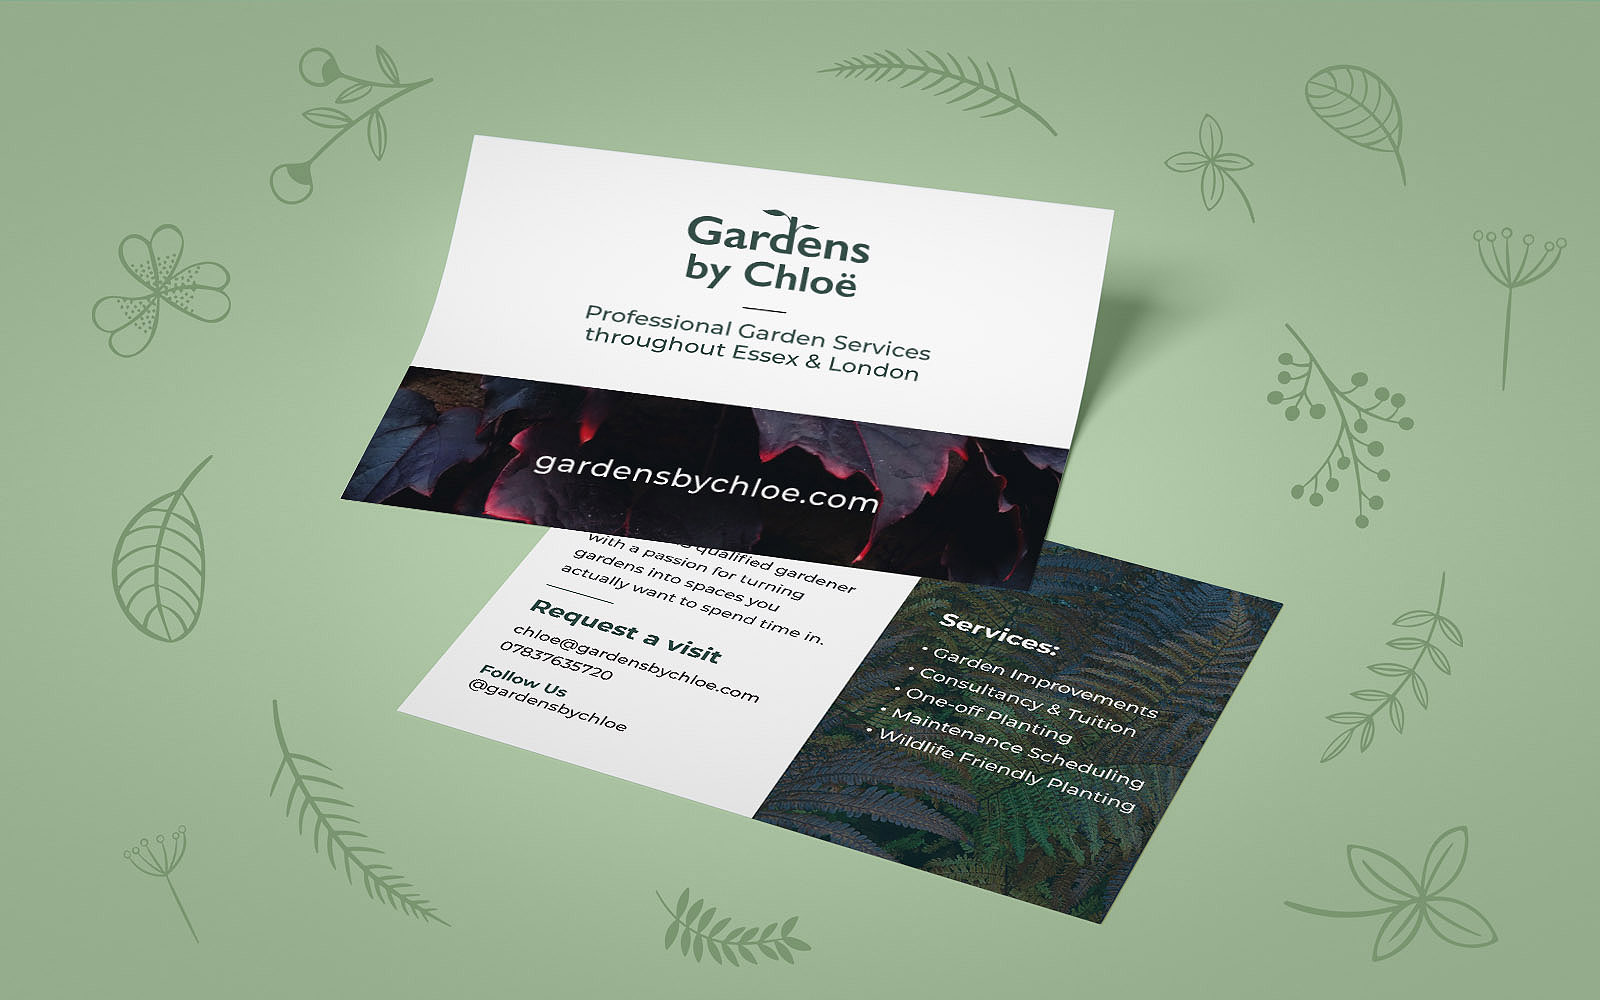 Flyers designed and printed for Gardens by Chloë